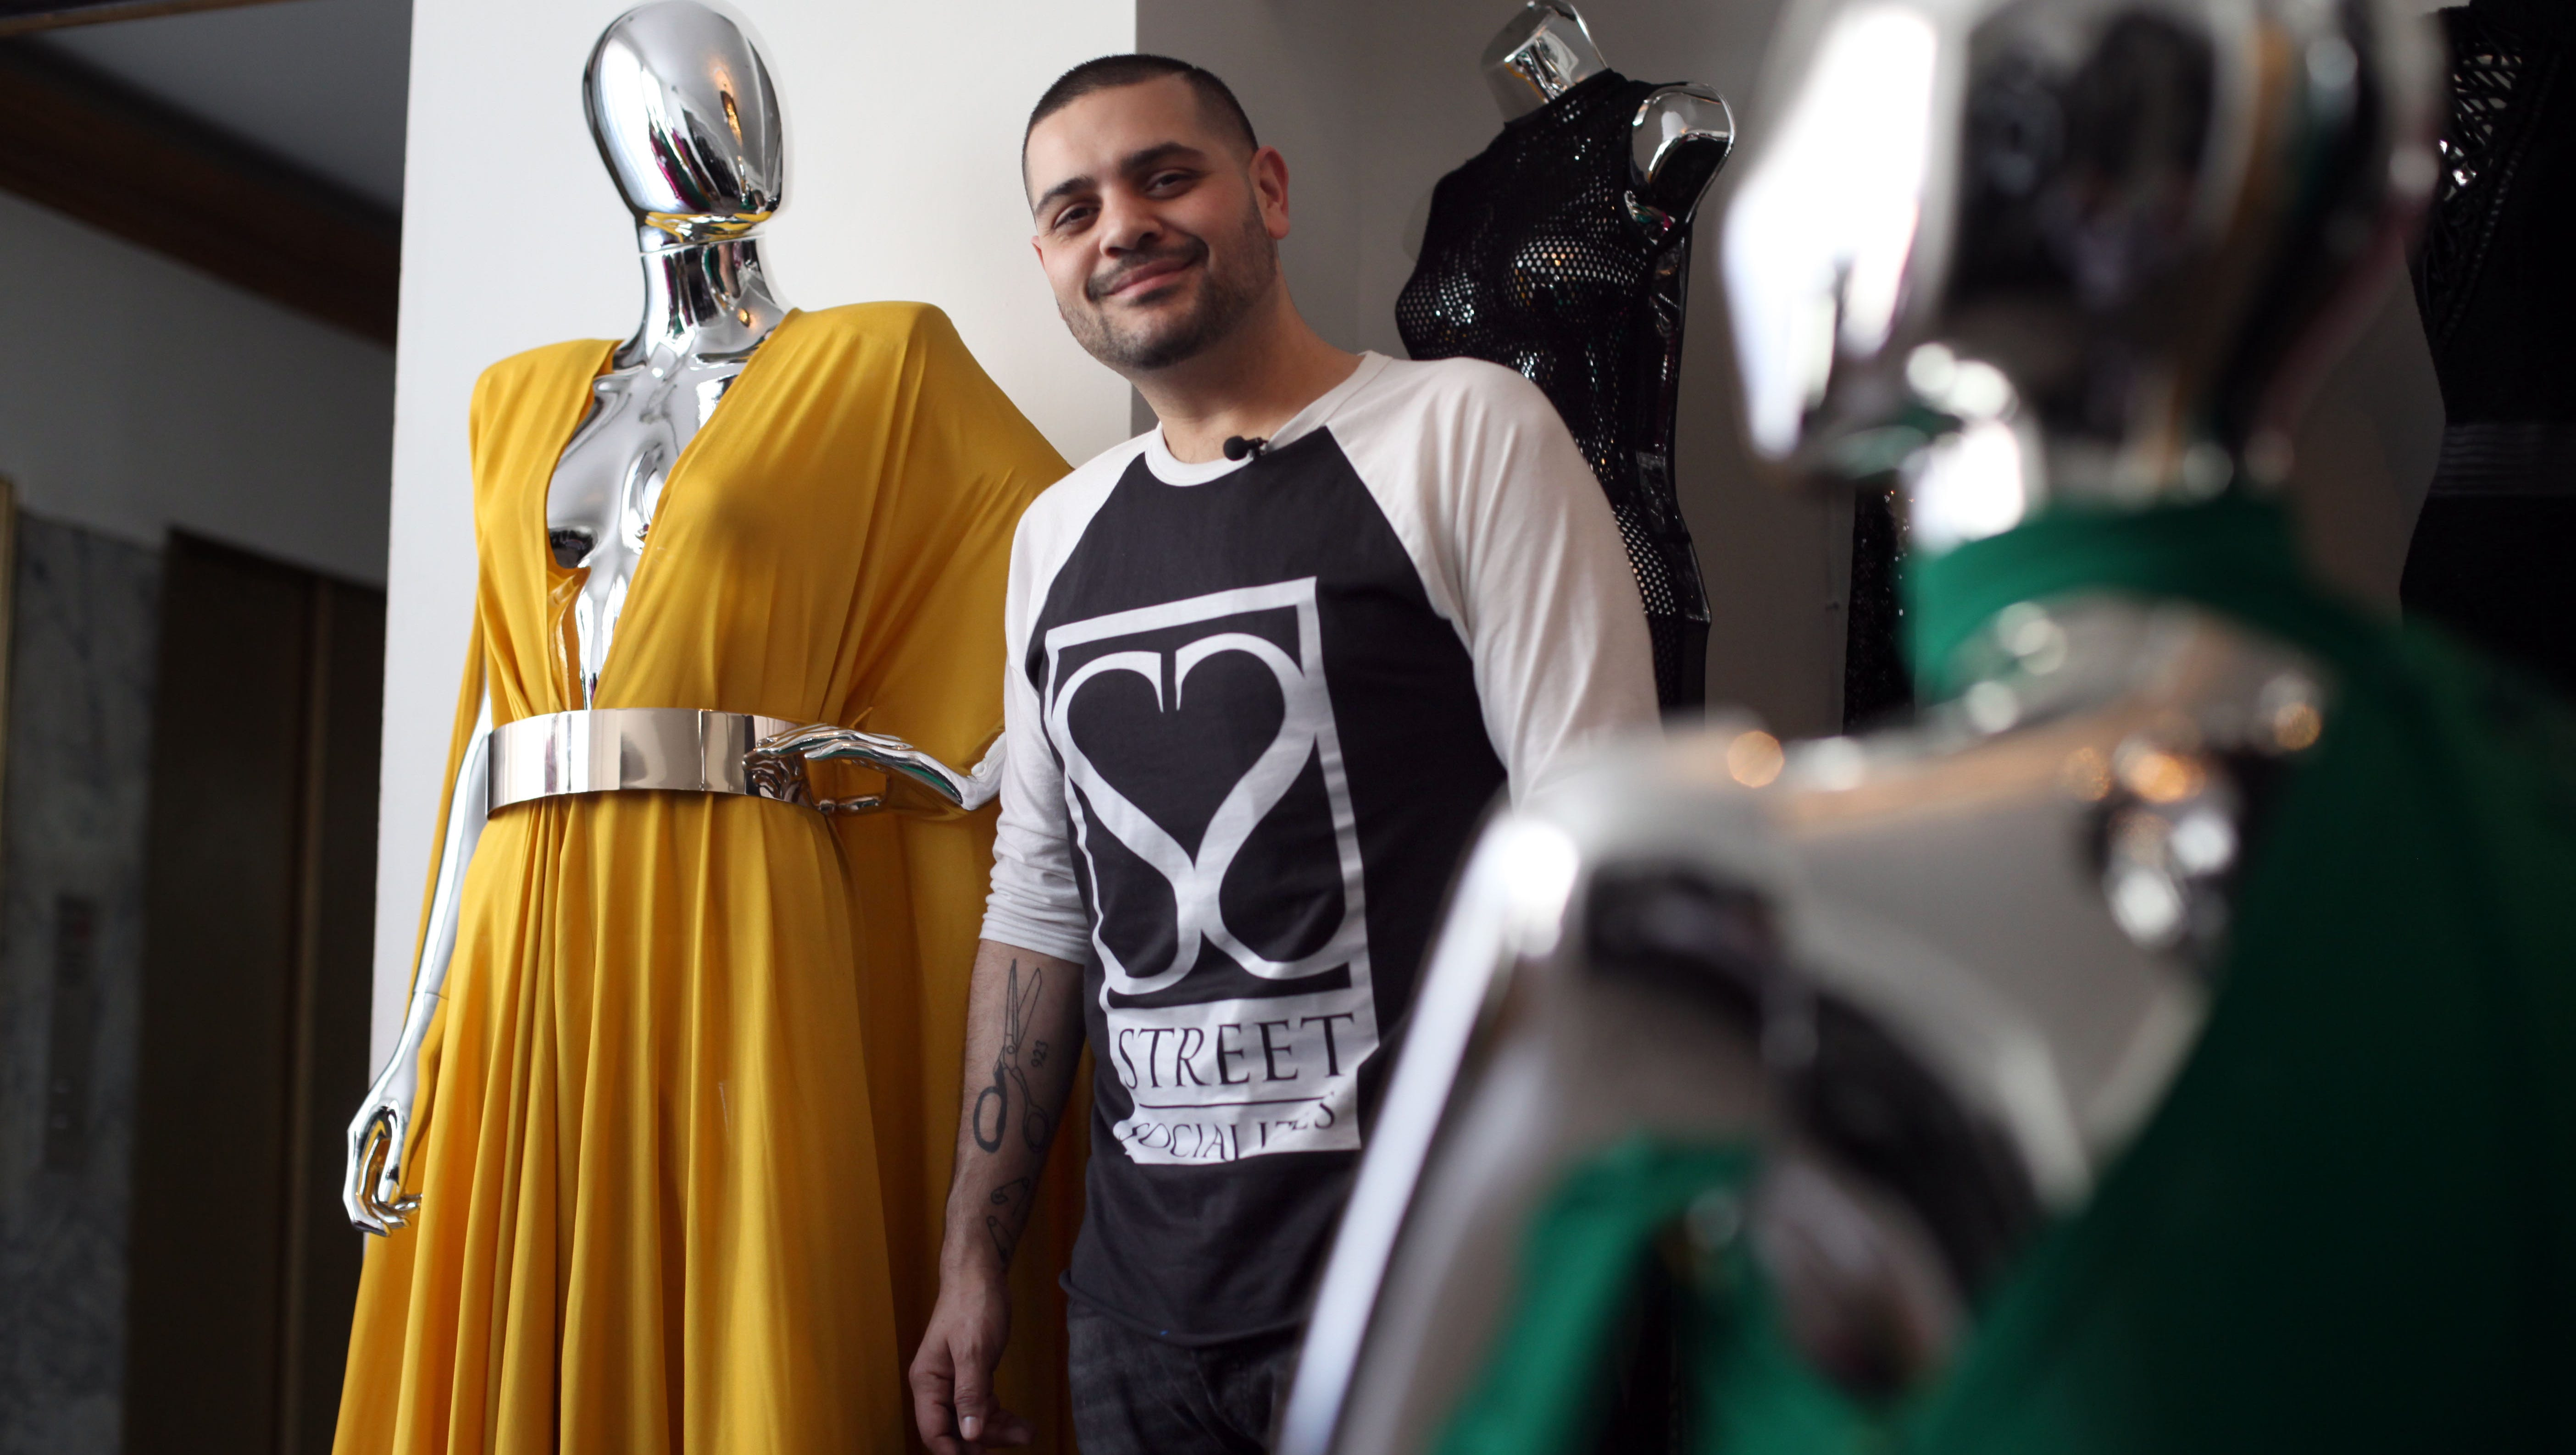 Michael Costello Returns Home For Project Runway Event